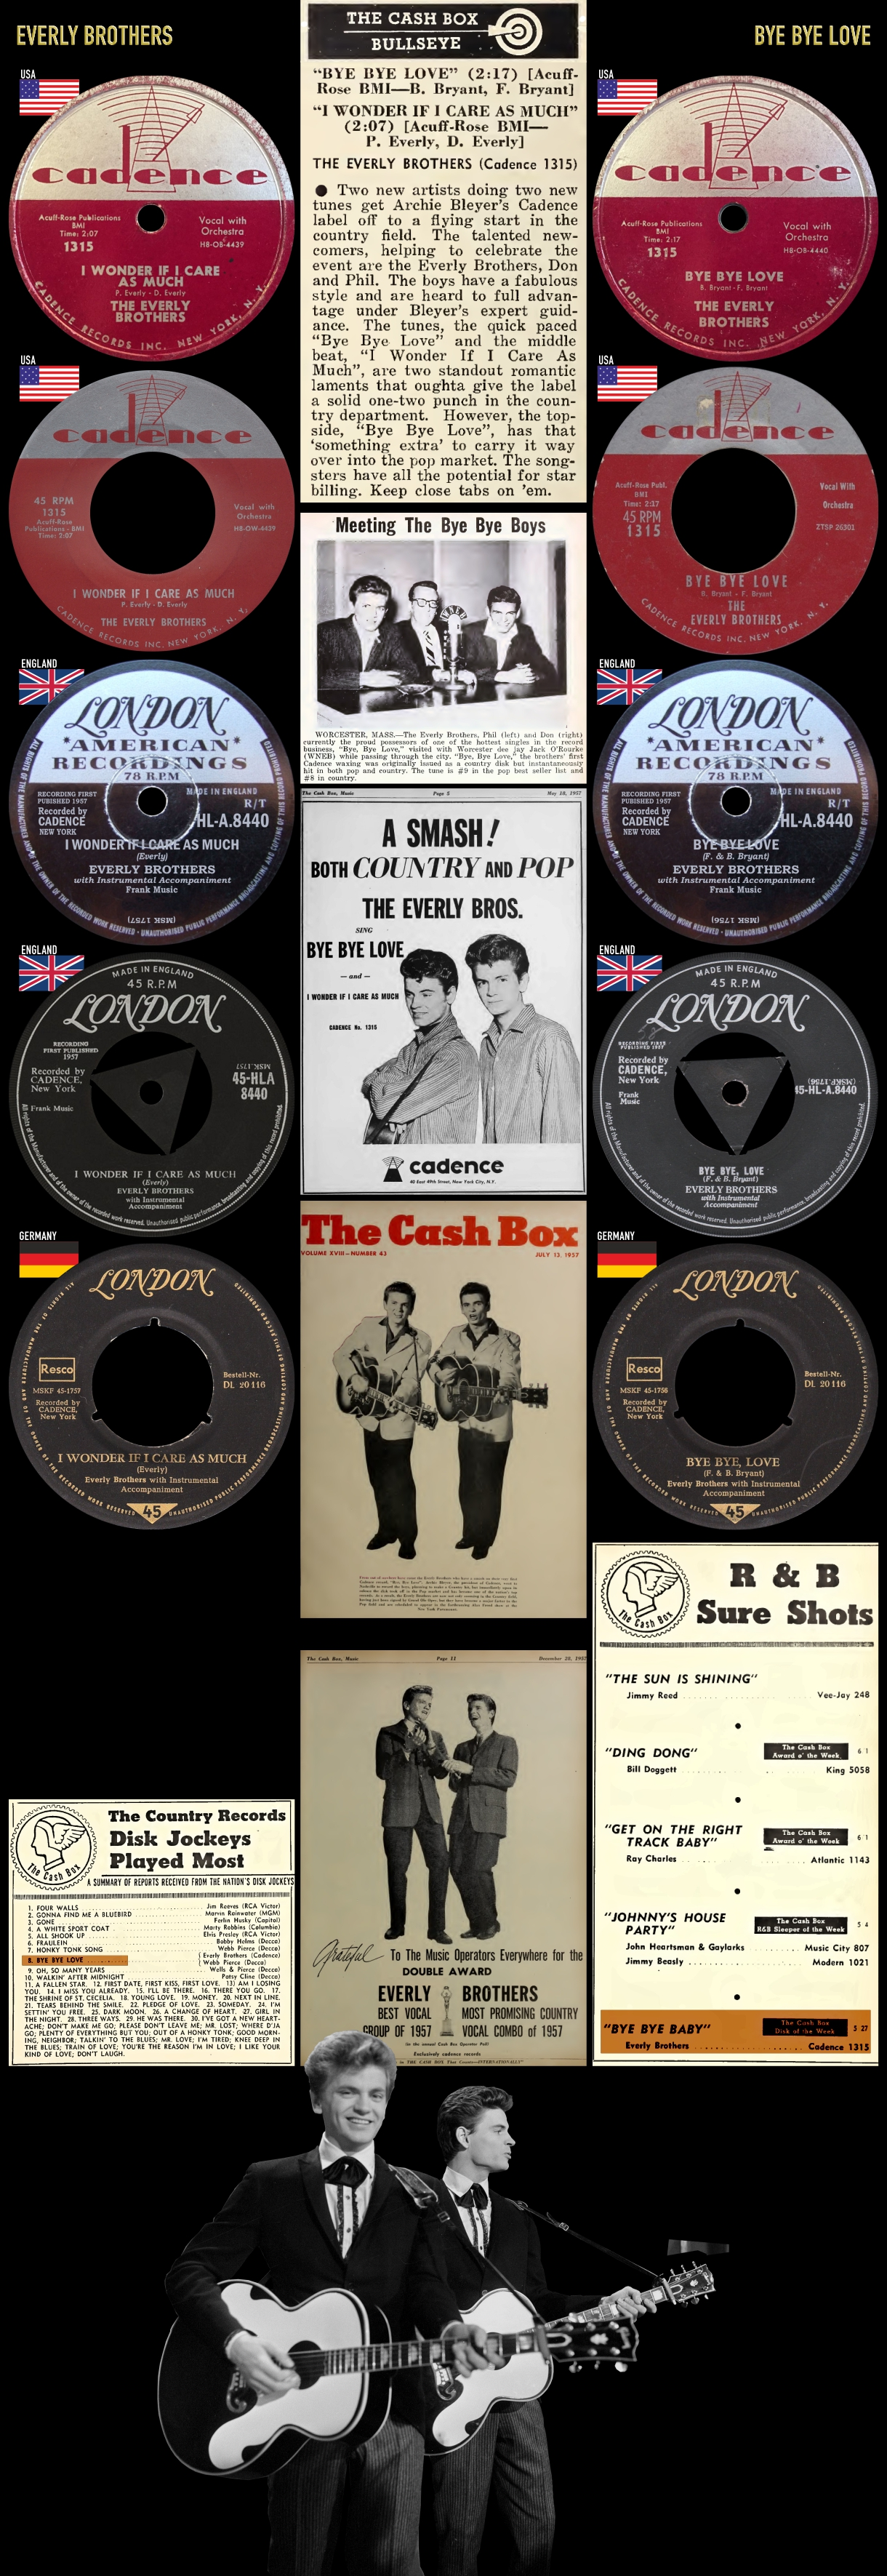 570525_Everly Brothers_Bye Bye Love_I Wonder If I Care As Much